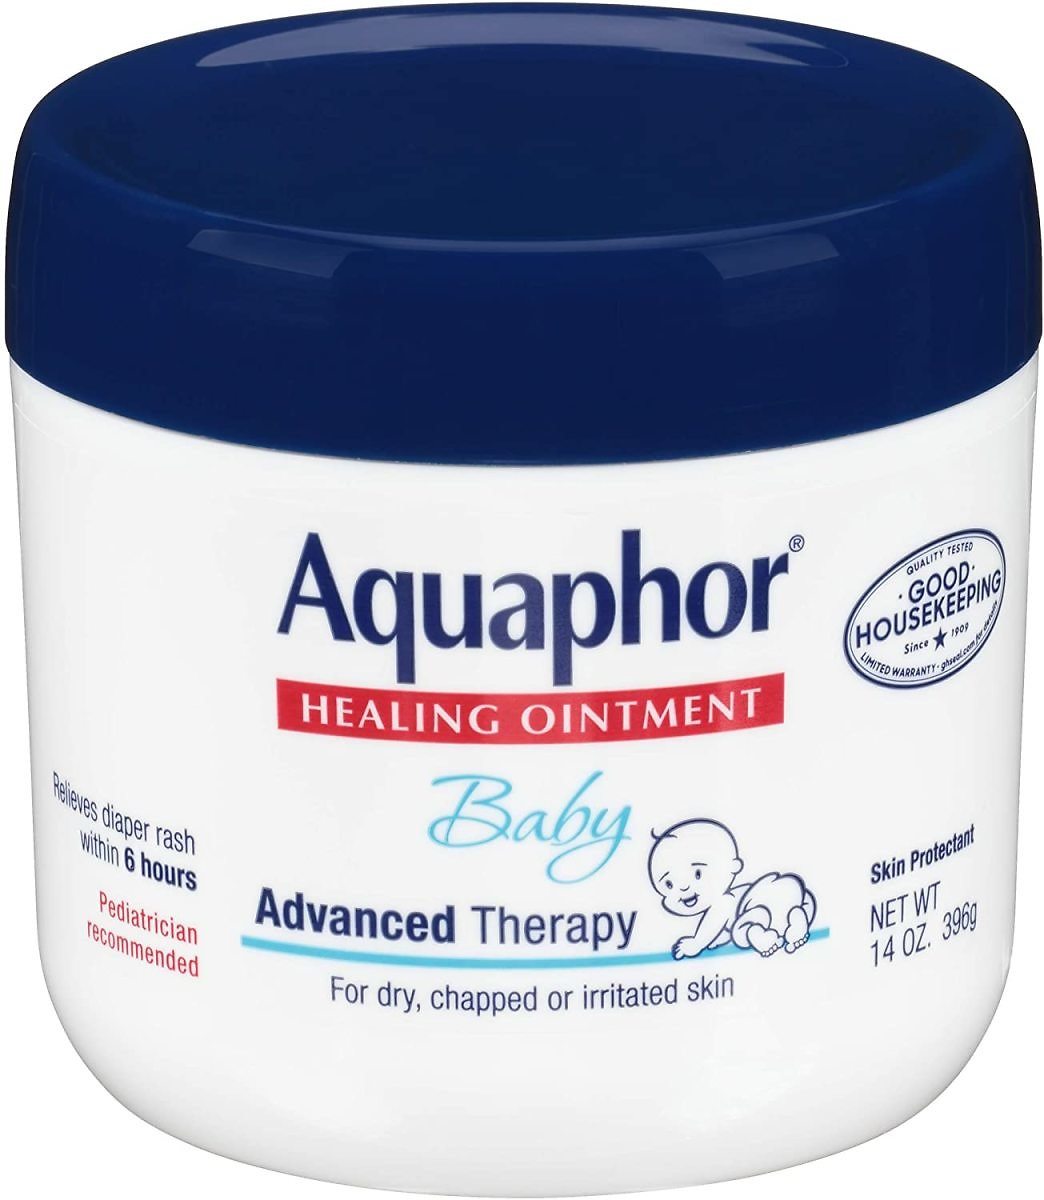 44% Off Aquaphor Baby Healing Ointment - Advance Therapy for Diaper Rash, Chapped Cheeks and Minor Scrapes - 14. Oz Jar